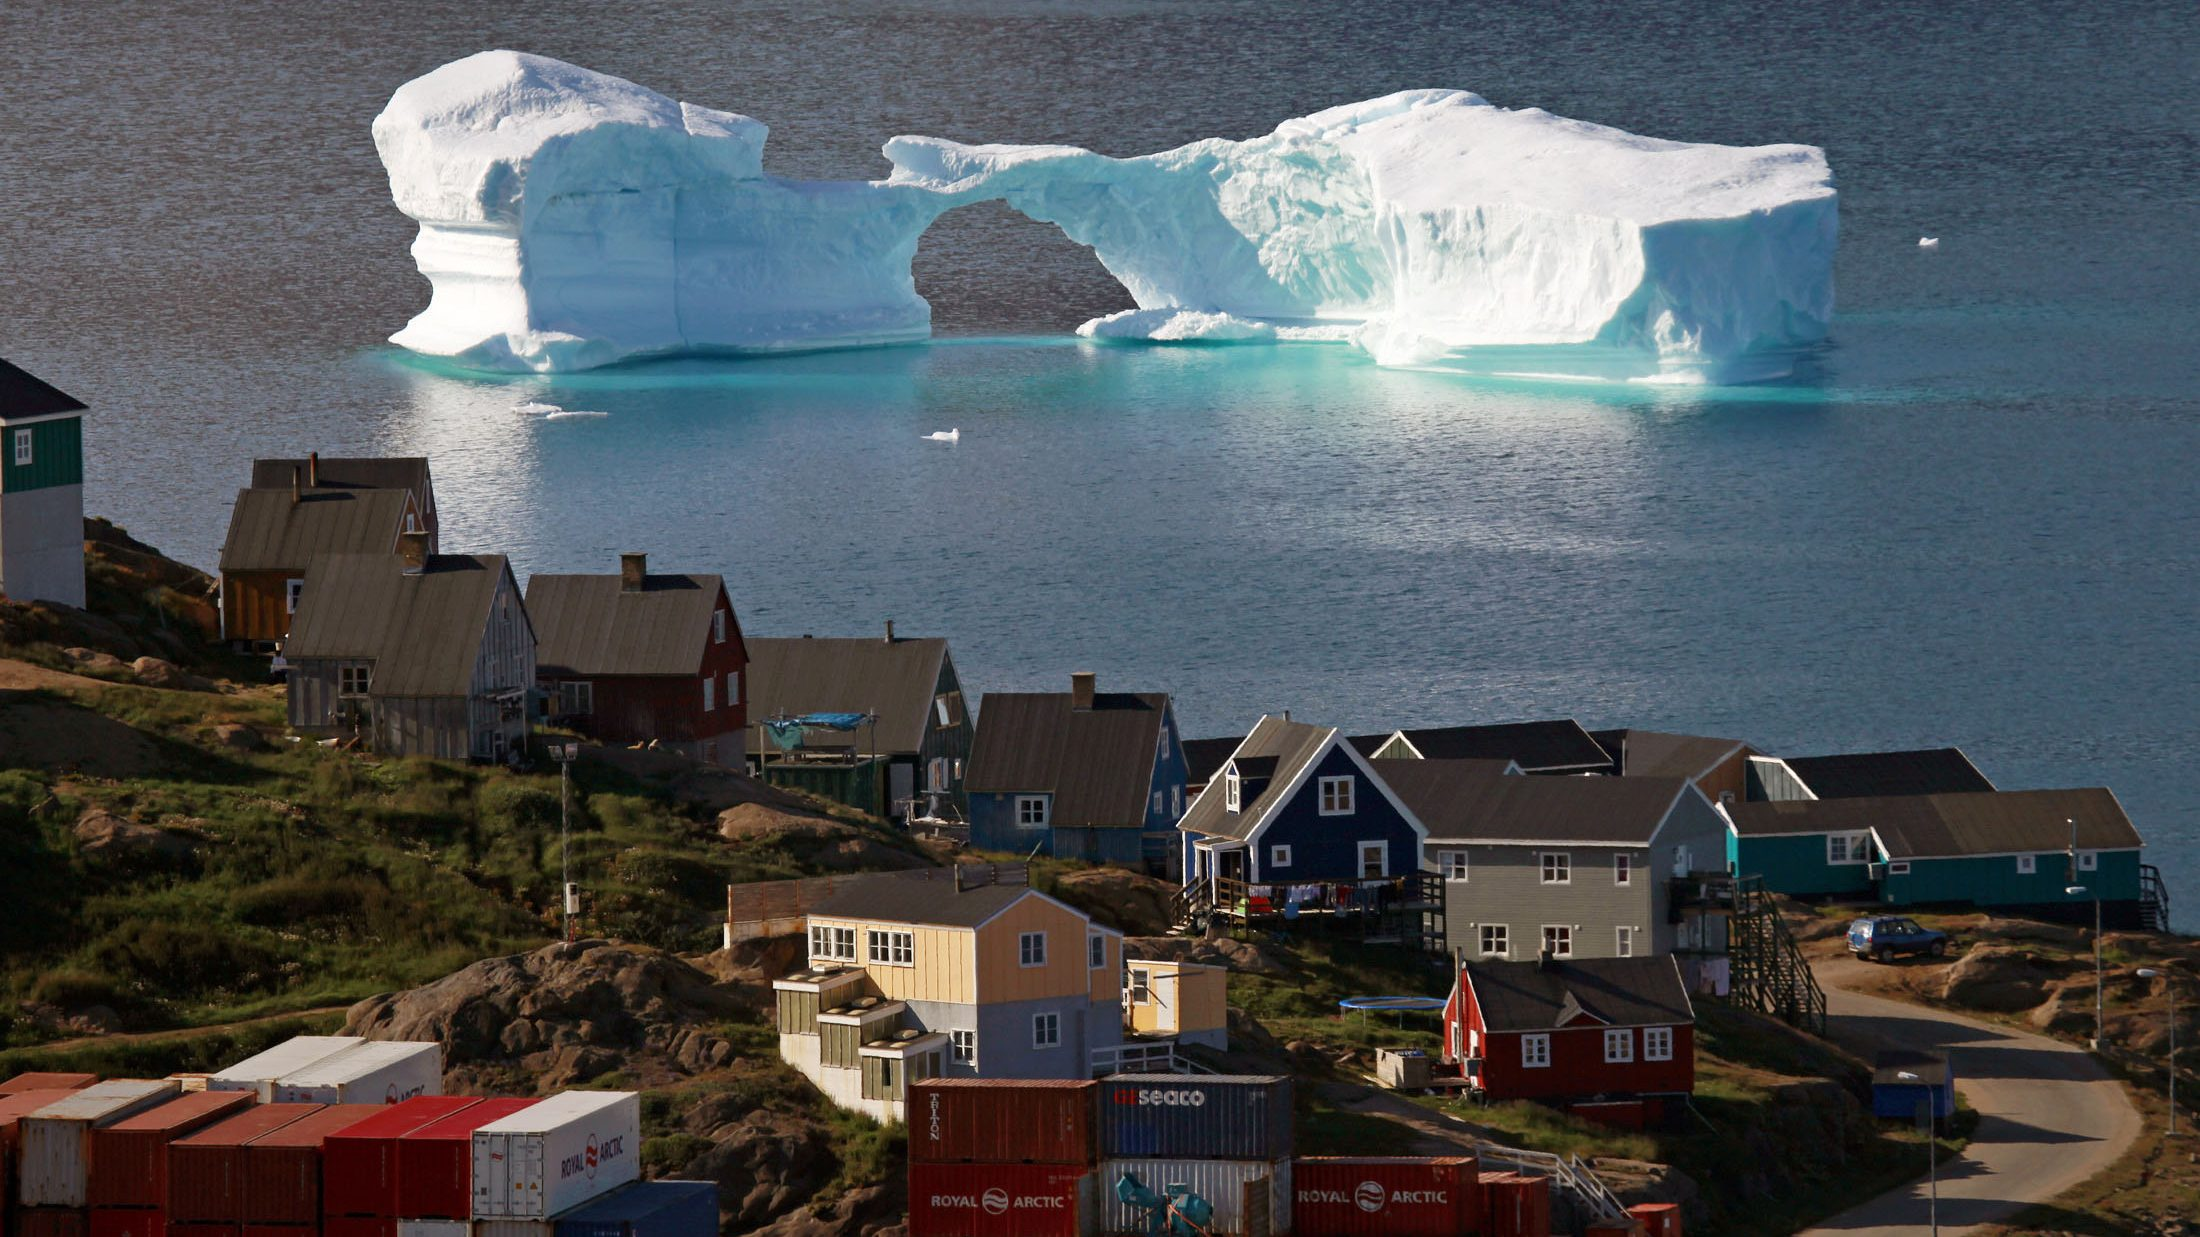 An iceberg floats near a harbour in the town of Kulusuk, east Greenland.